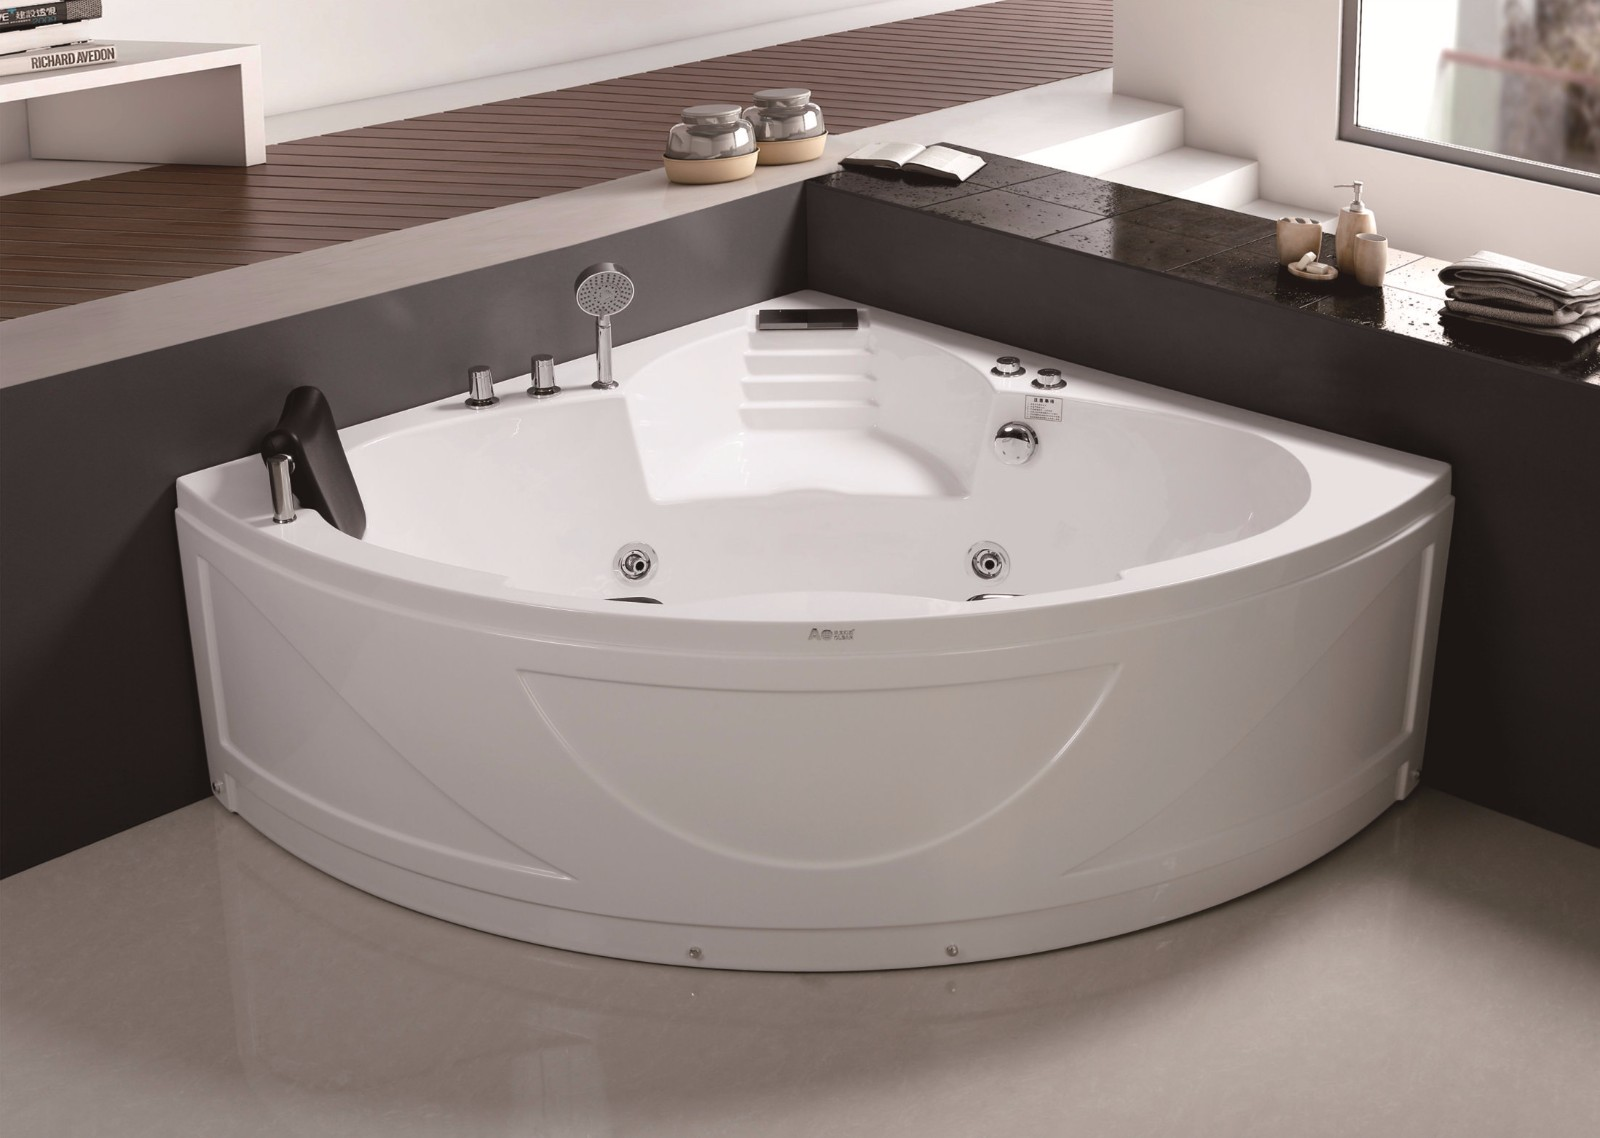 C-423 Acrylic Hot Tub Jetted  Bathroom Bathtub with Cheap Price for Sale.jpg